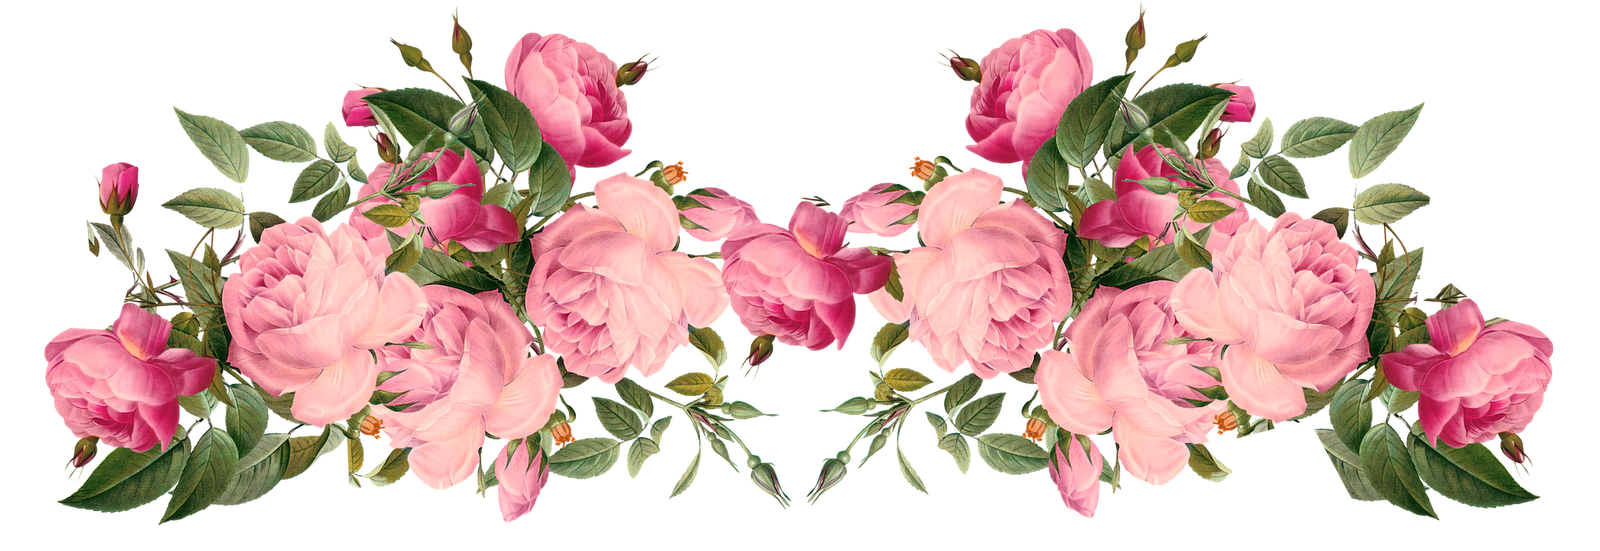 Clipart hufford family funeral. Rose border png